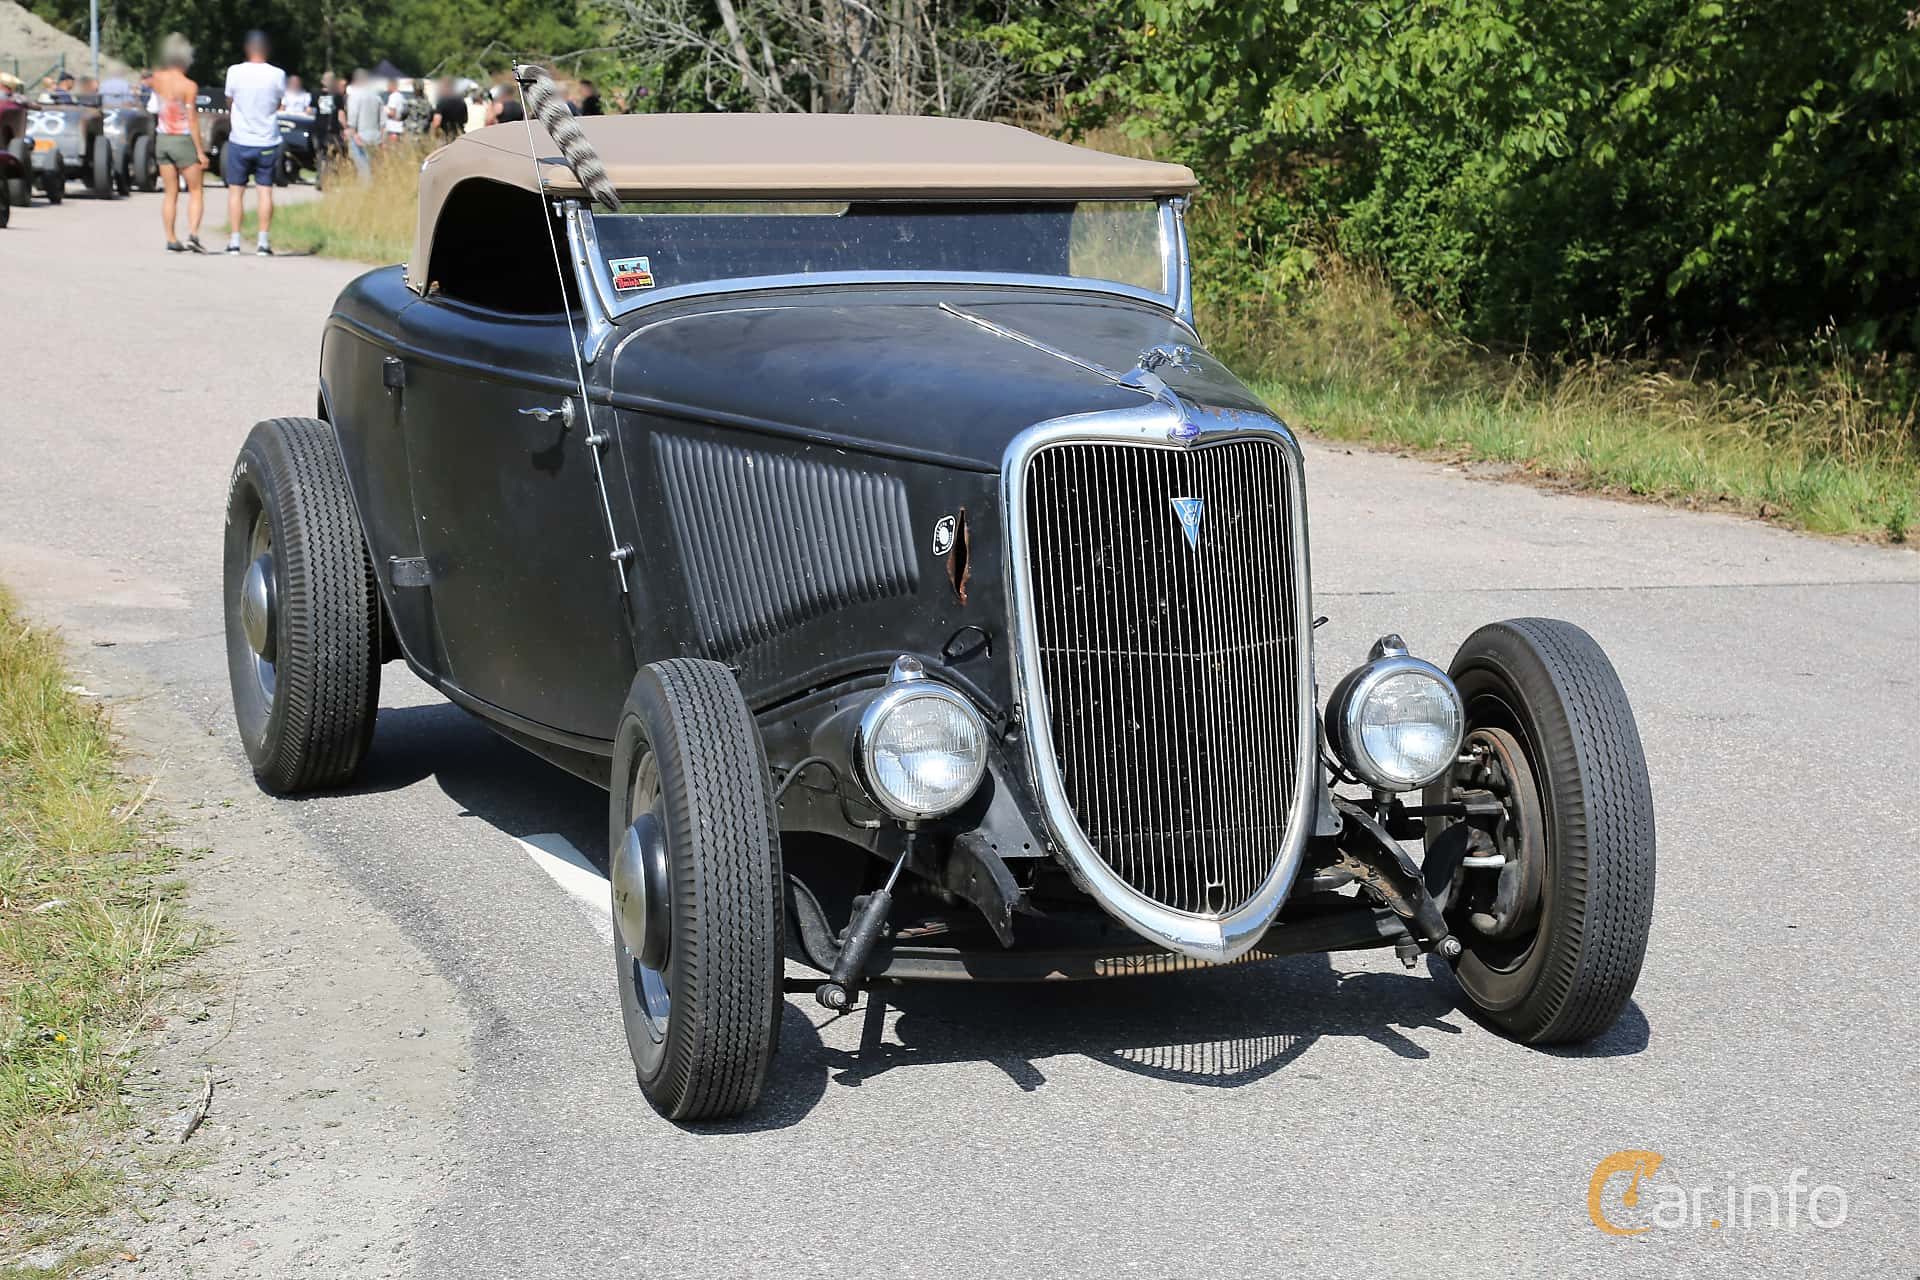 Ford Model 40 Roadster 3.3 Manual, 51hp, 1934 at A-bombers - Old Style Weekend Backamo 2019